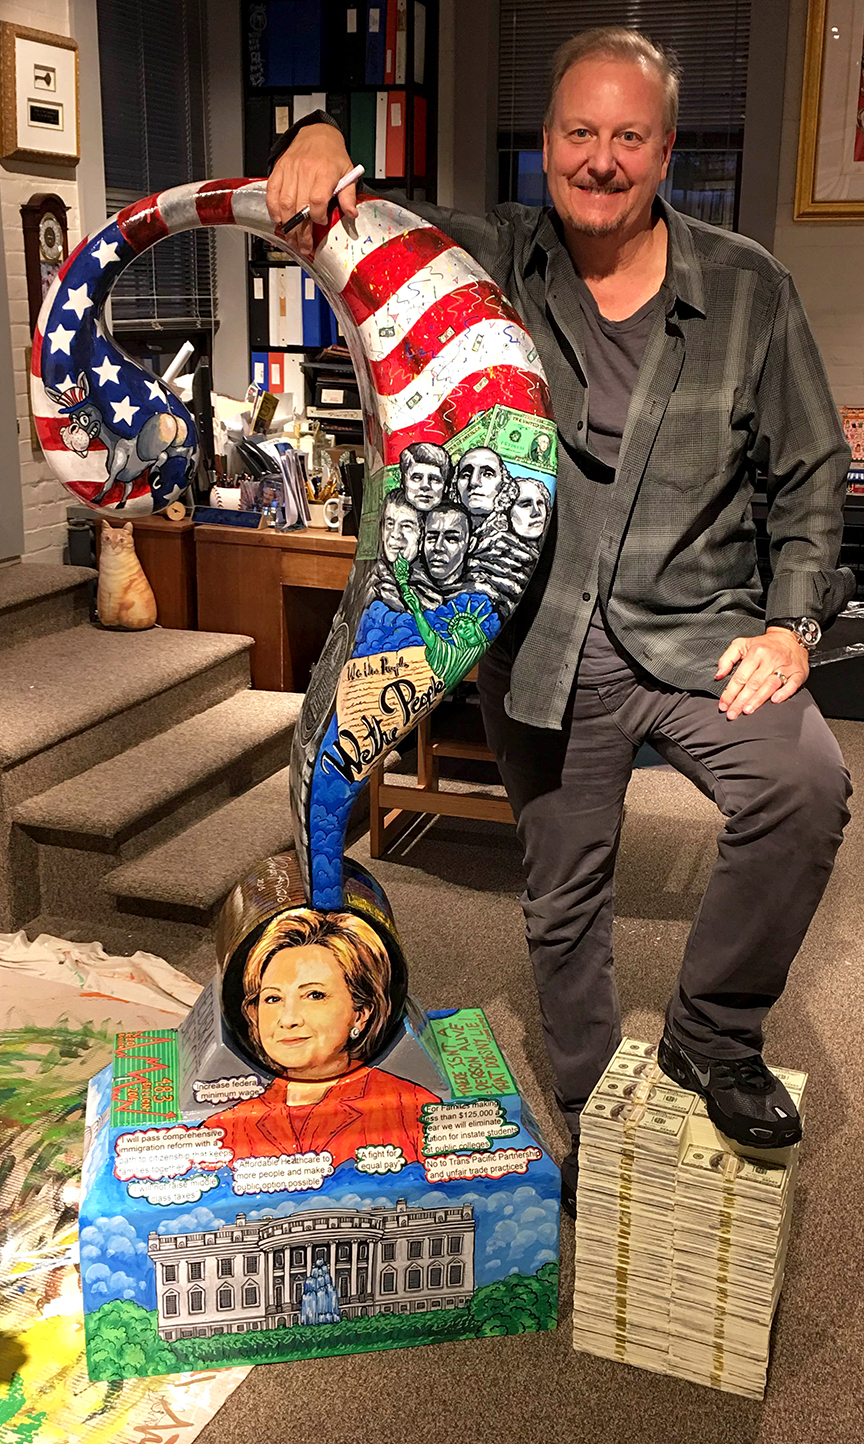 Charles Fazzino standing next to his Hilary Clinton question mark sculpture dedicated to the 2016 presidential debate